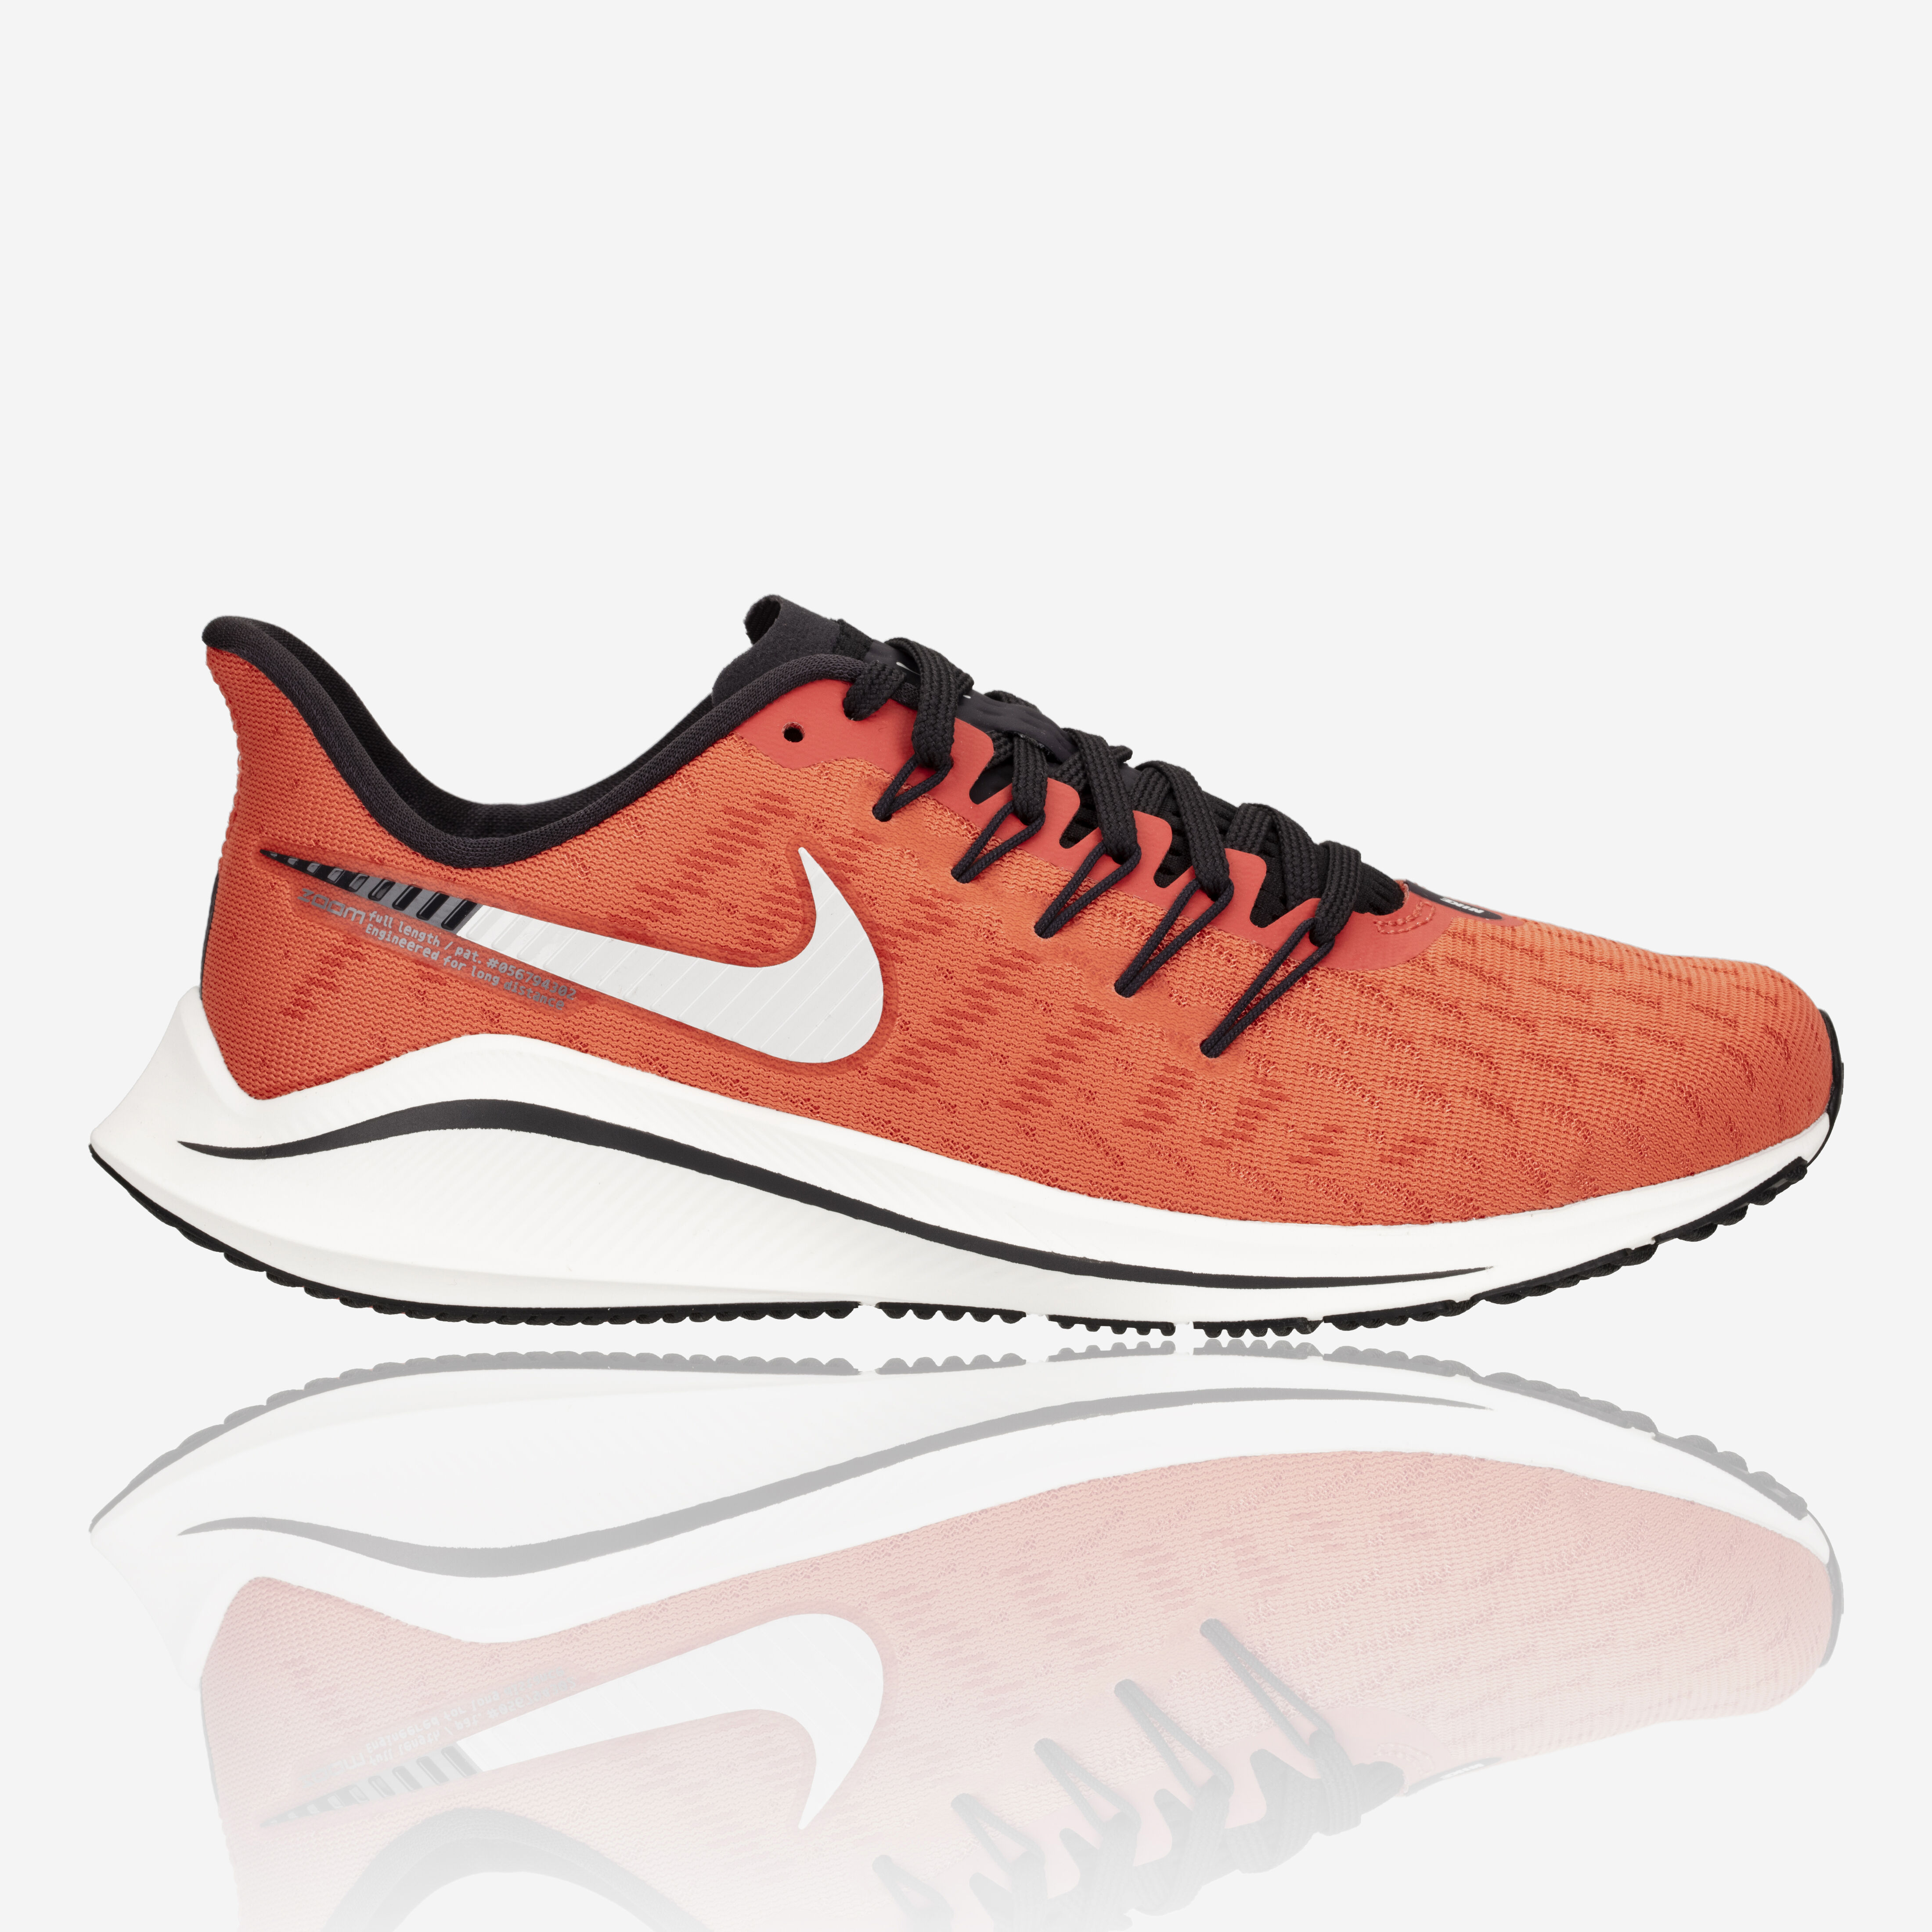 a76bd21a7f7e Nike Air Zoom Vomero 14 W shoes 2019 RUNKD online running store